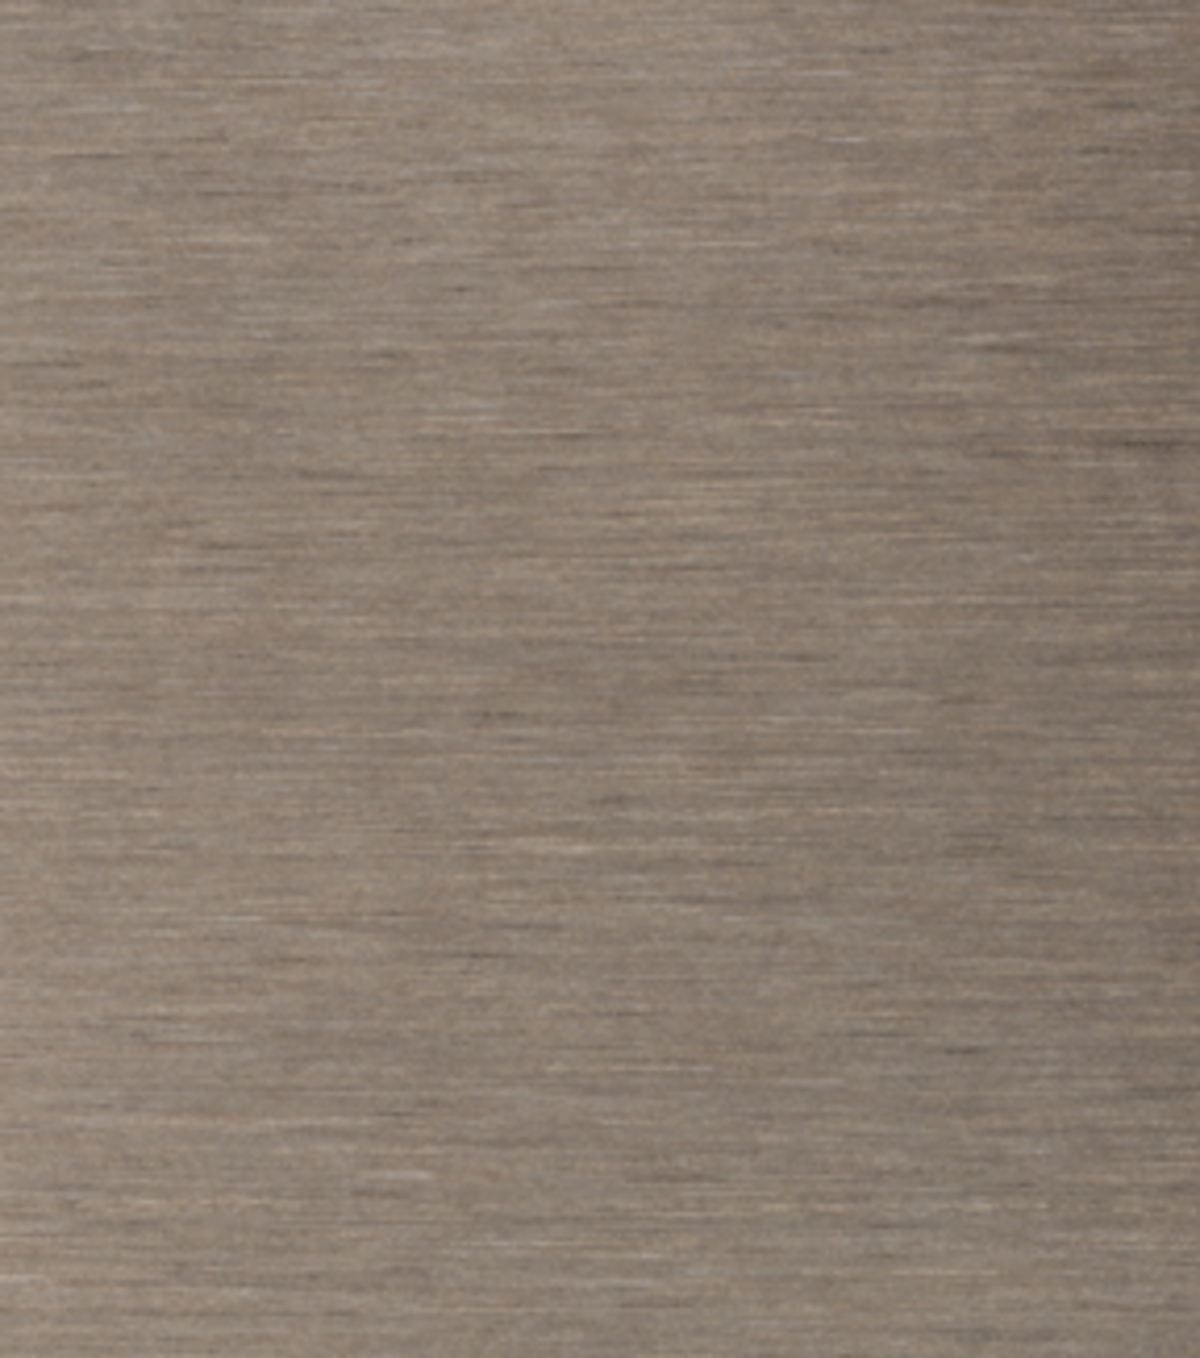 Home Decor 8\u0022x8\u0022 Fabric Swatch-SMC Designs Darla / Graphite